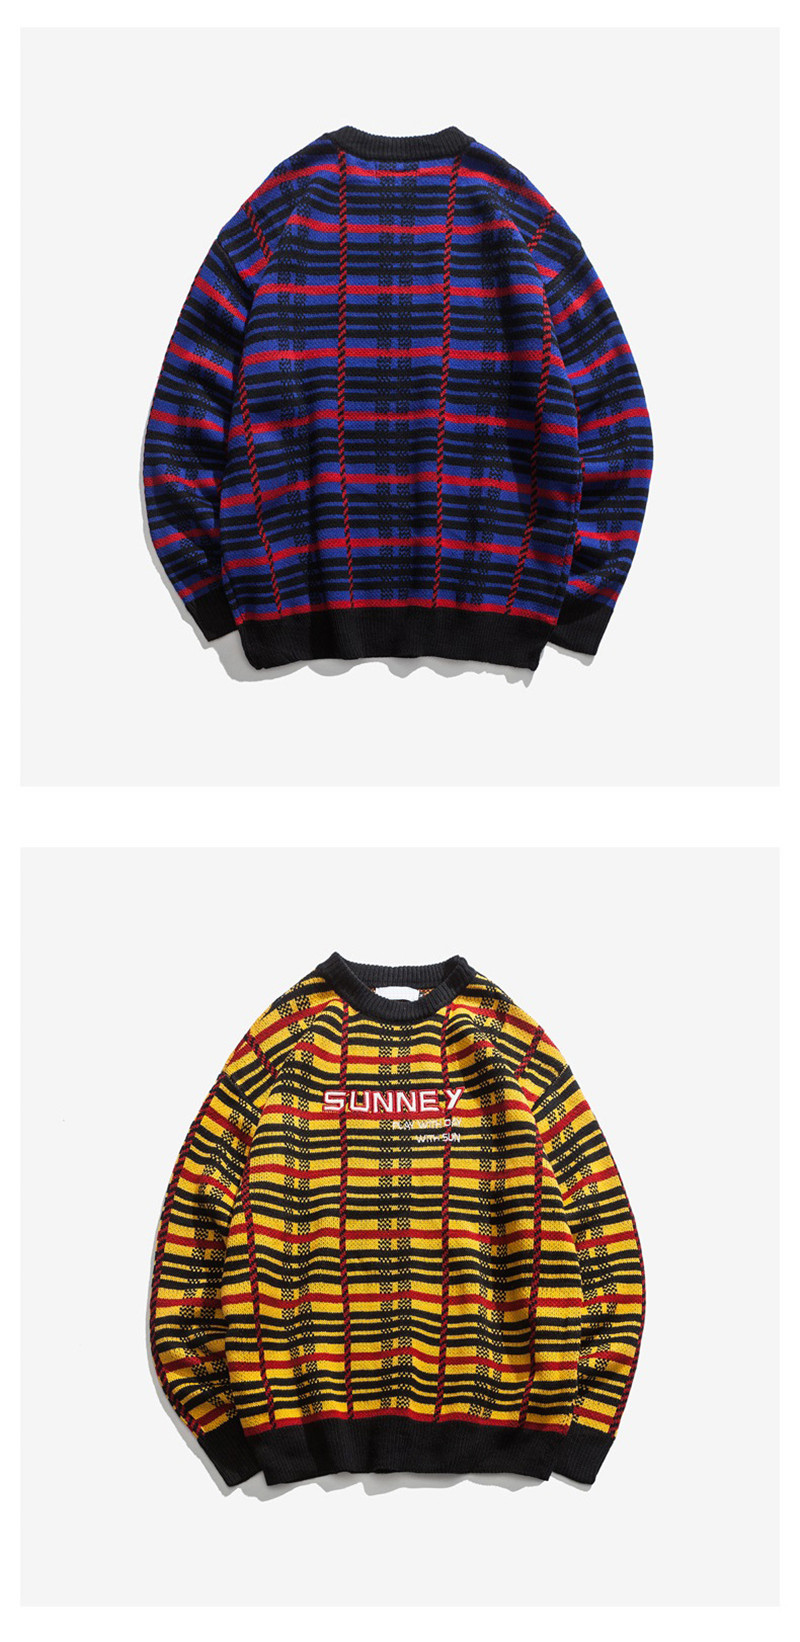 Knitted Harajuku Casual Embroidered Letter Plaid Sweater for Men Japanese Style Urban Boys Knit Pullover Jumper Plus Size M-XL 8